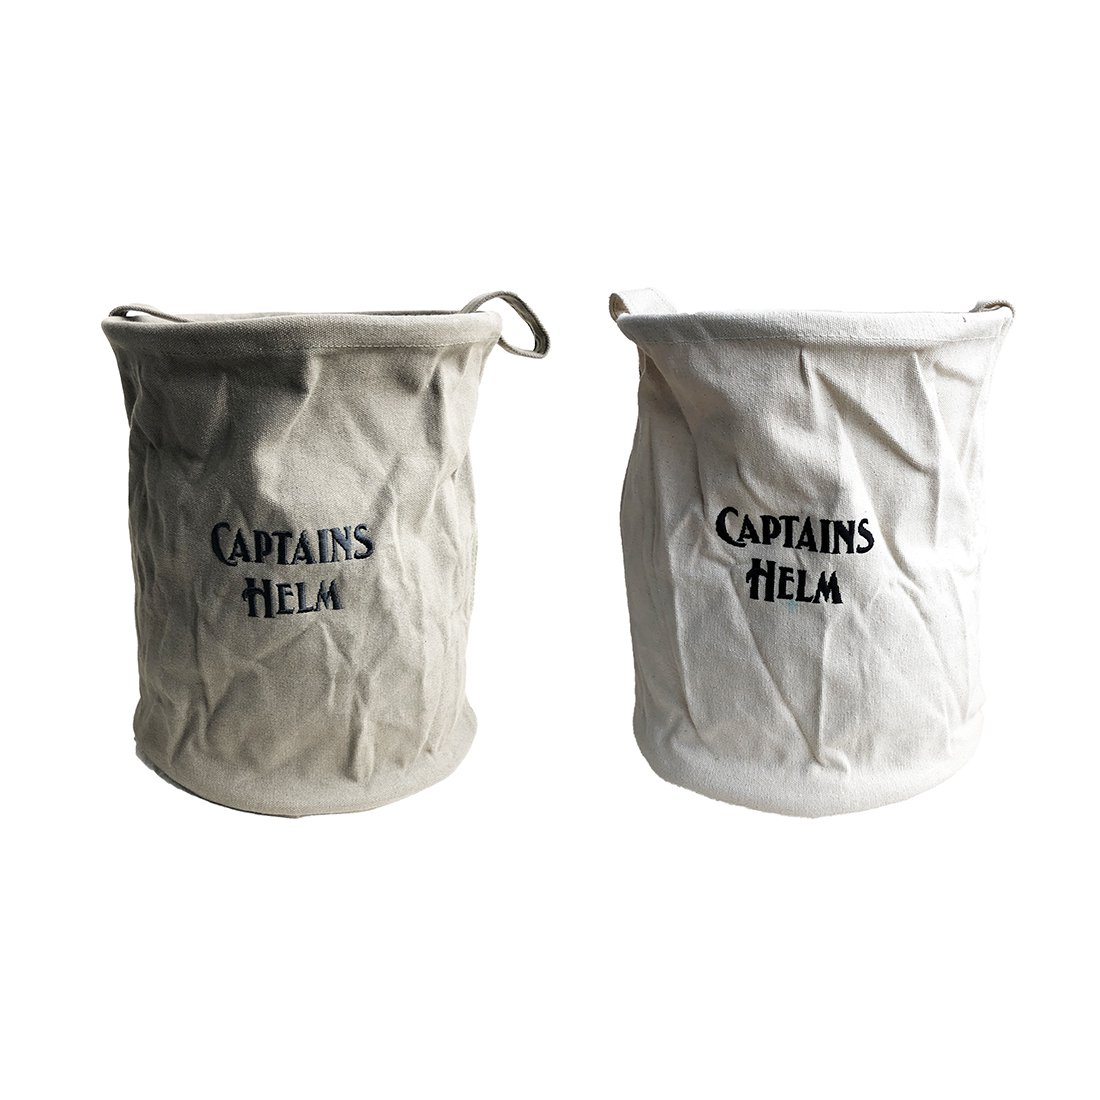 CAPTAINS HELM    #CANVAS MILITARY BUCKET